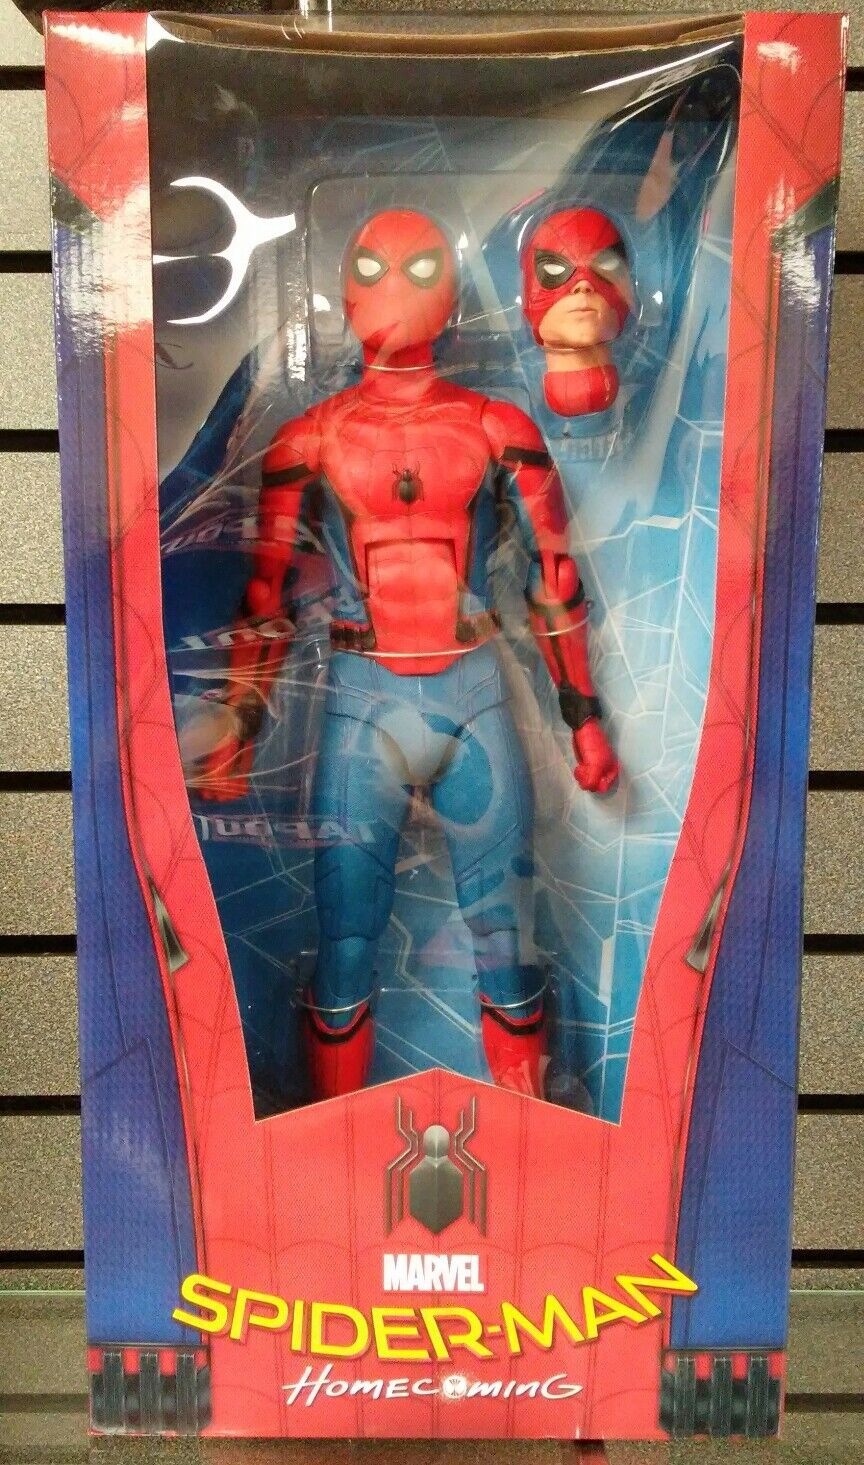 Neca | Spiderman | Marvel | Home Coming 1/4 Scale Figure | New | Ships Fast